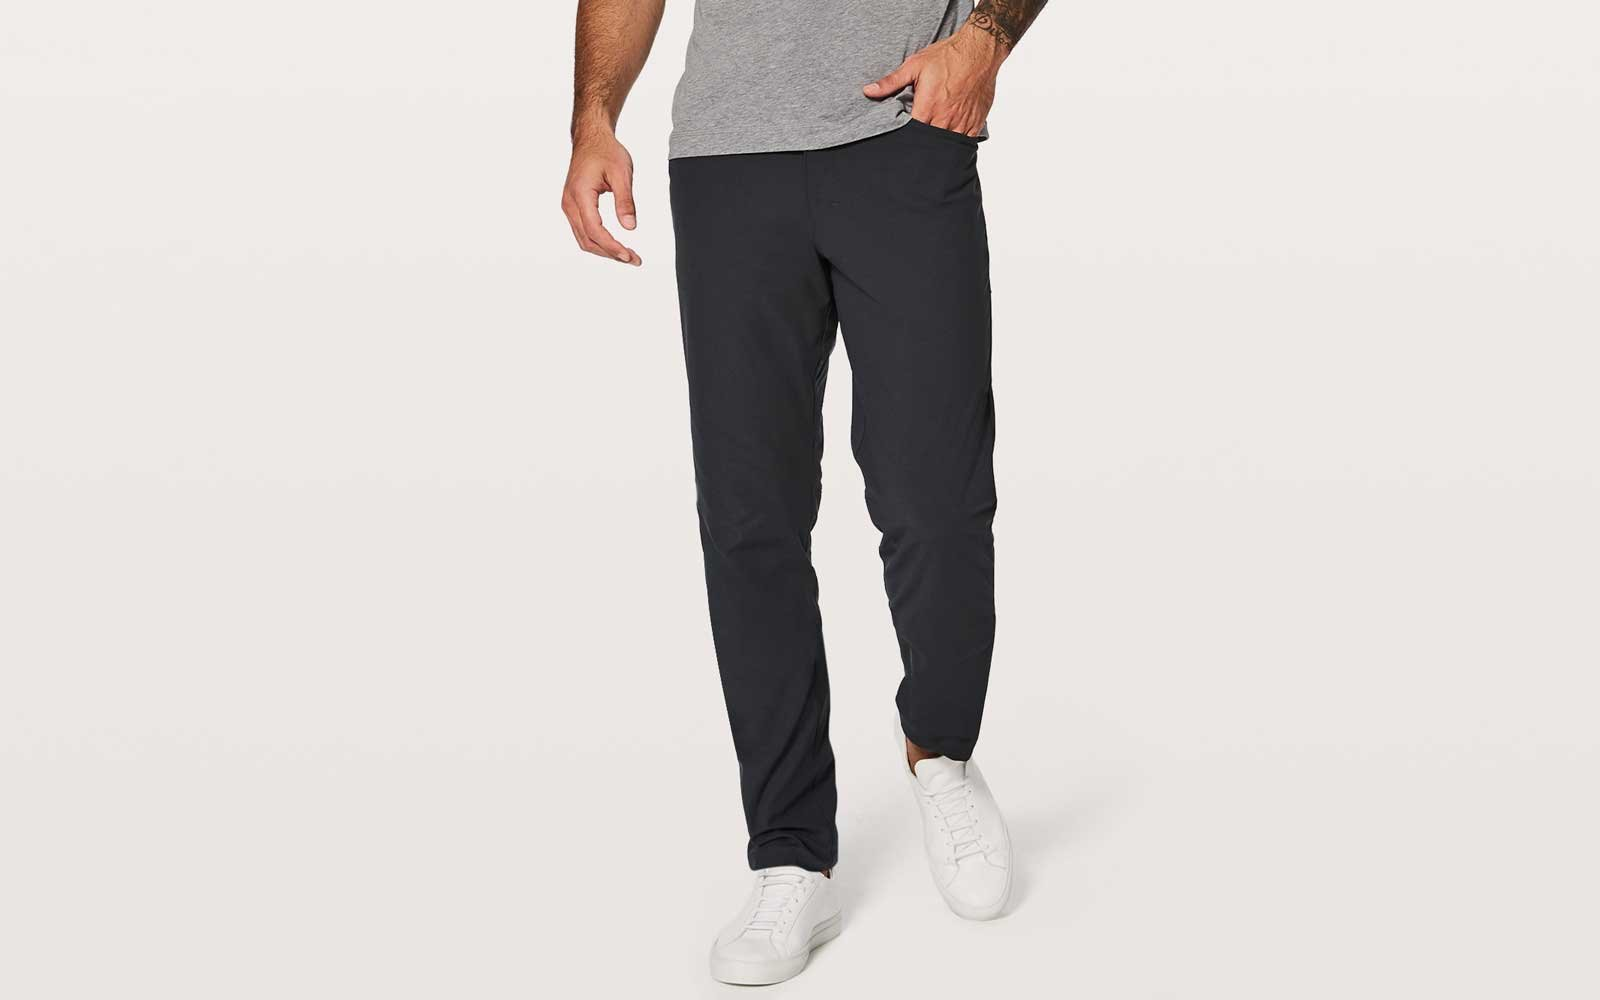 ever jeans brands comfortable thefashionspot style comforter most trends mens designed ayr top